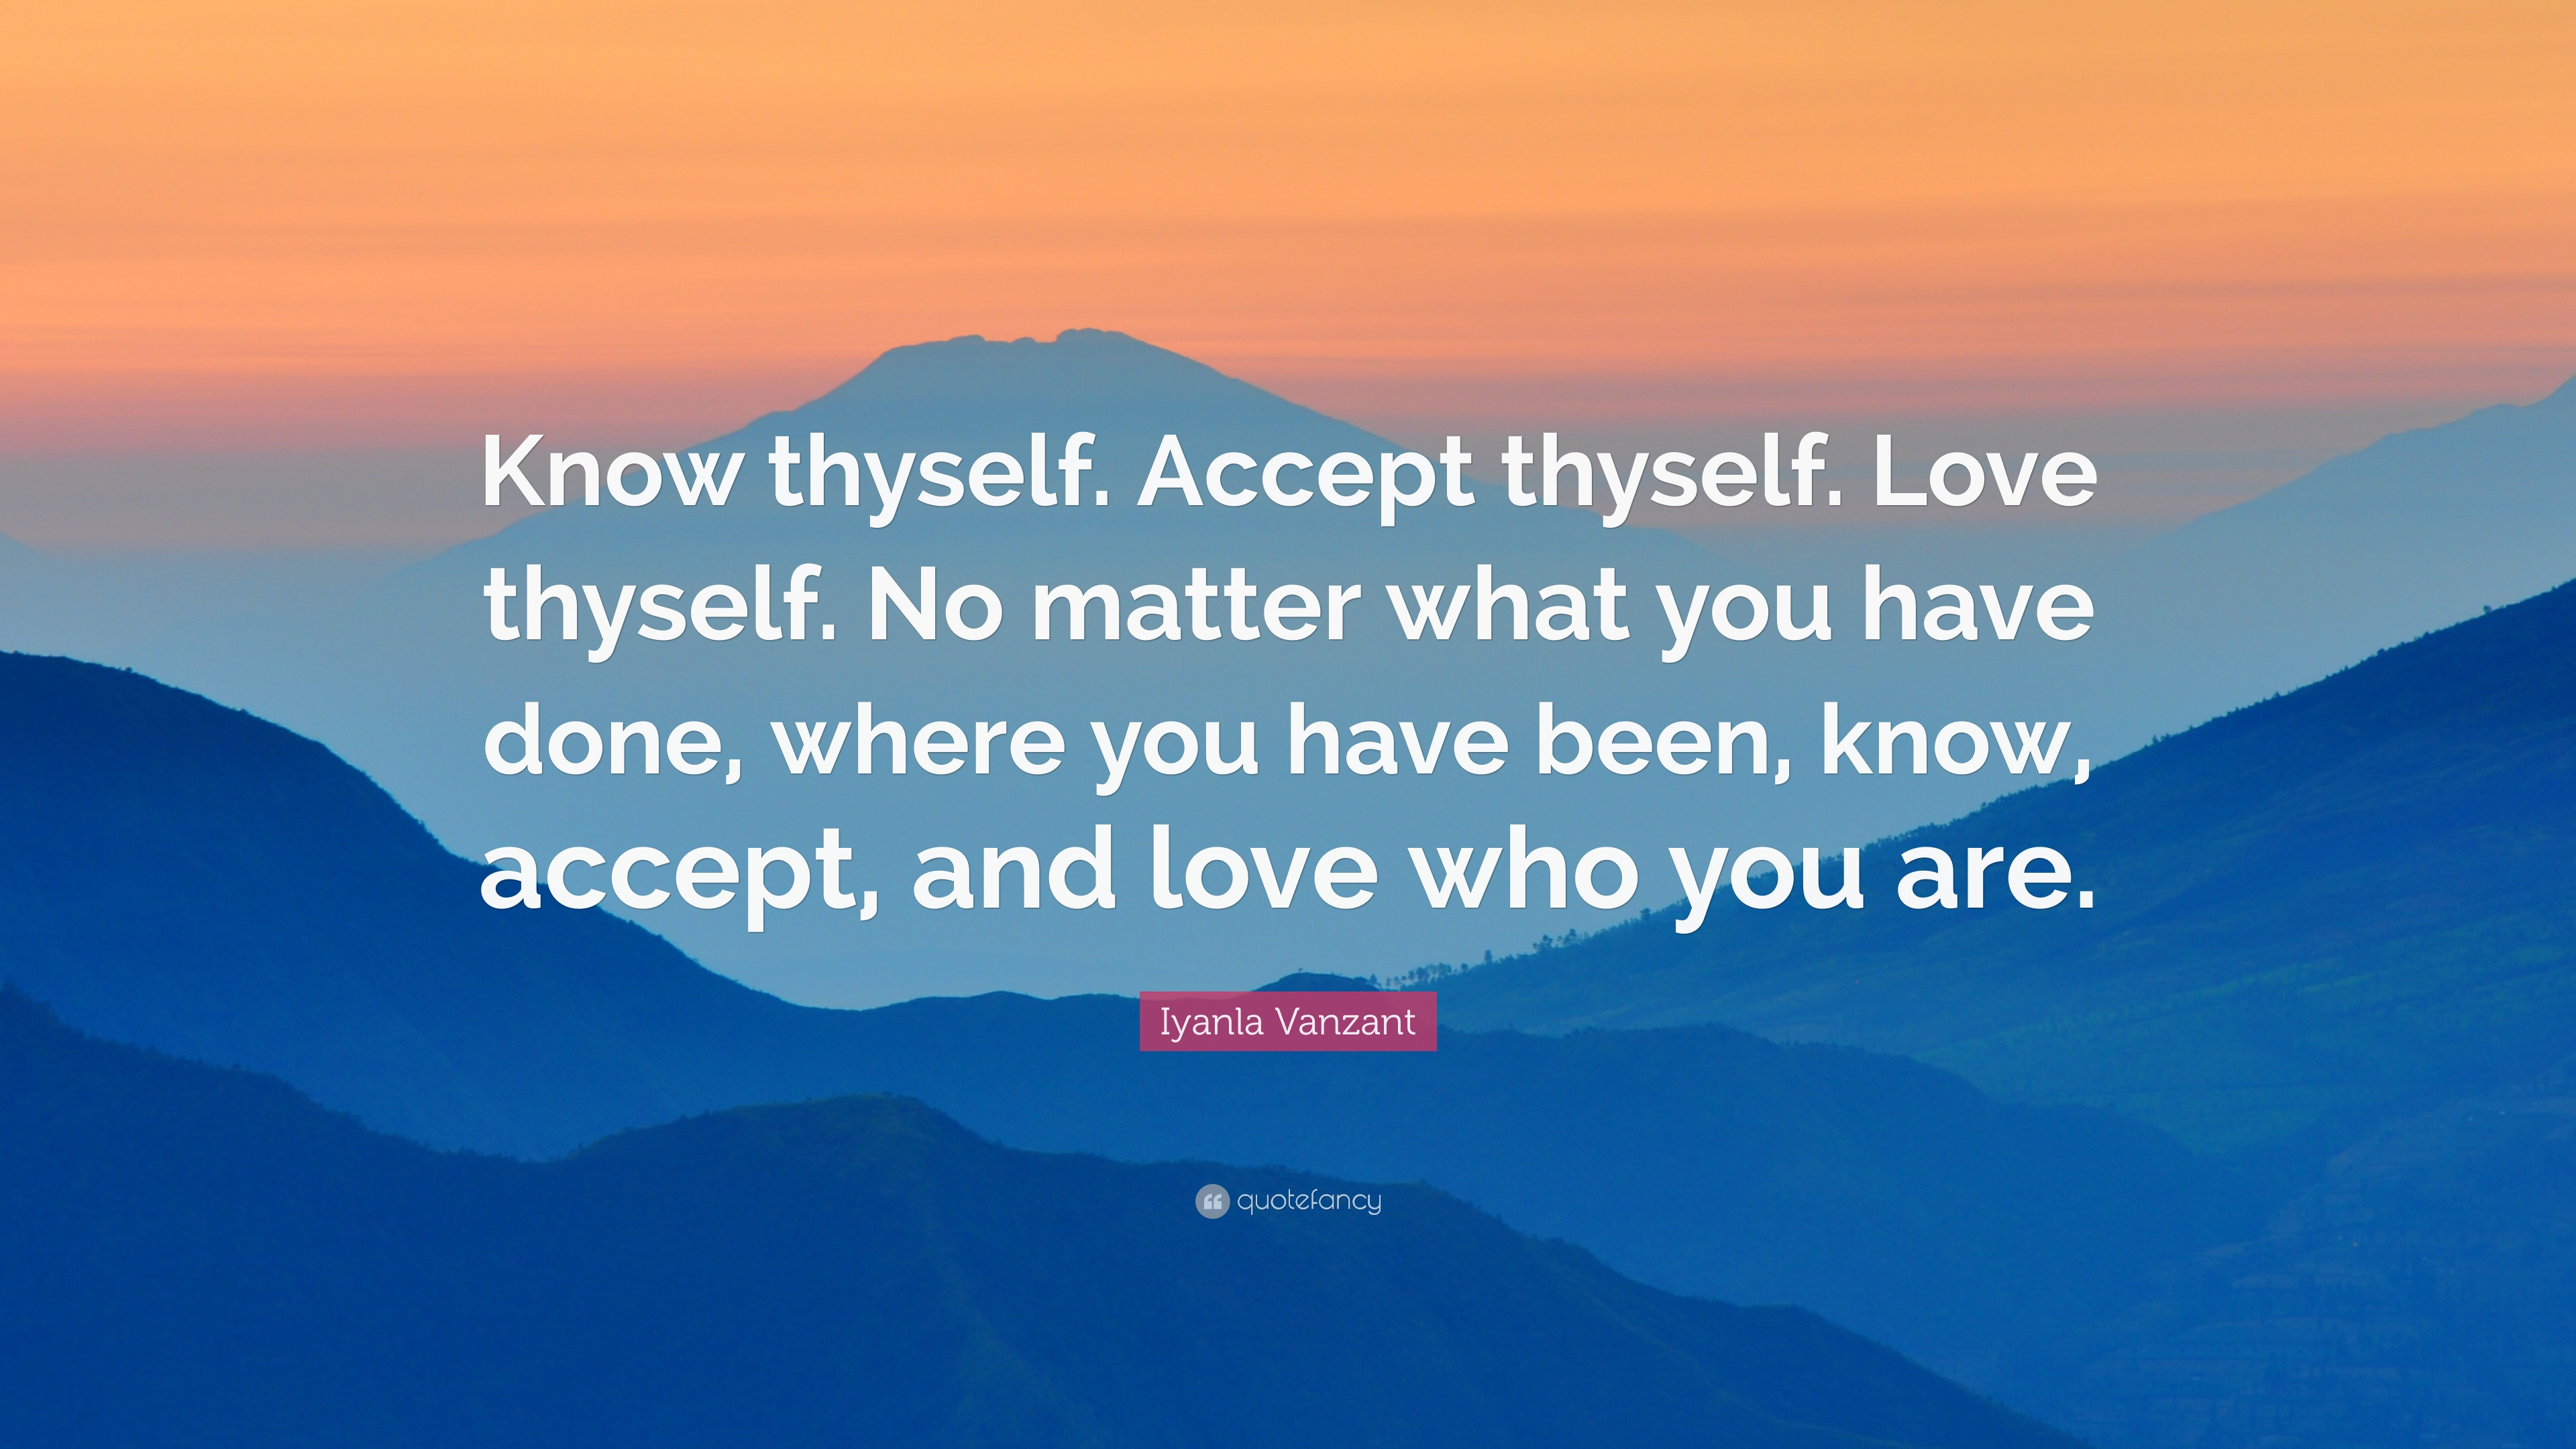 Iyanla Vanzant Quote Know Thyself Accept Thyself Love Thyself